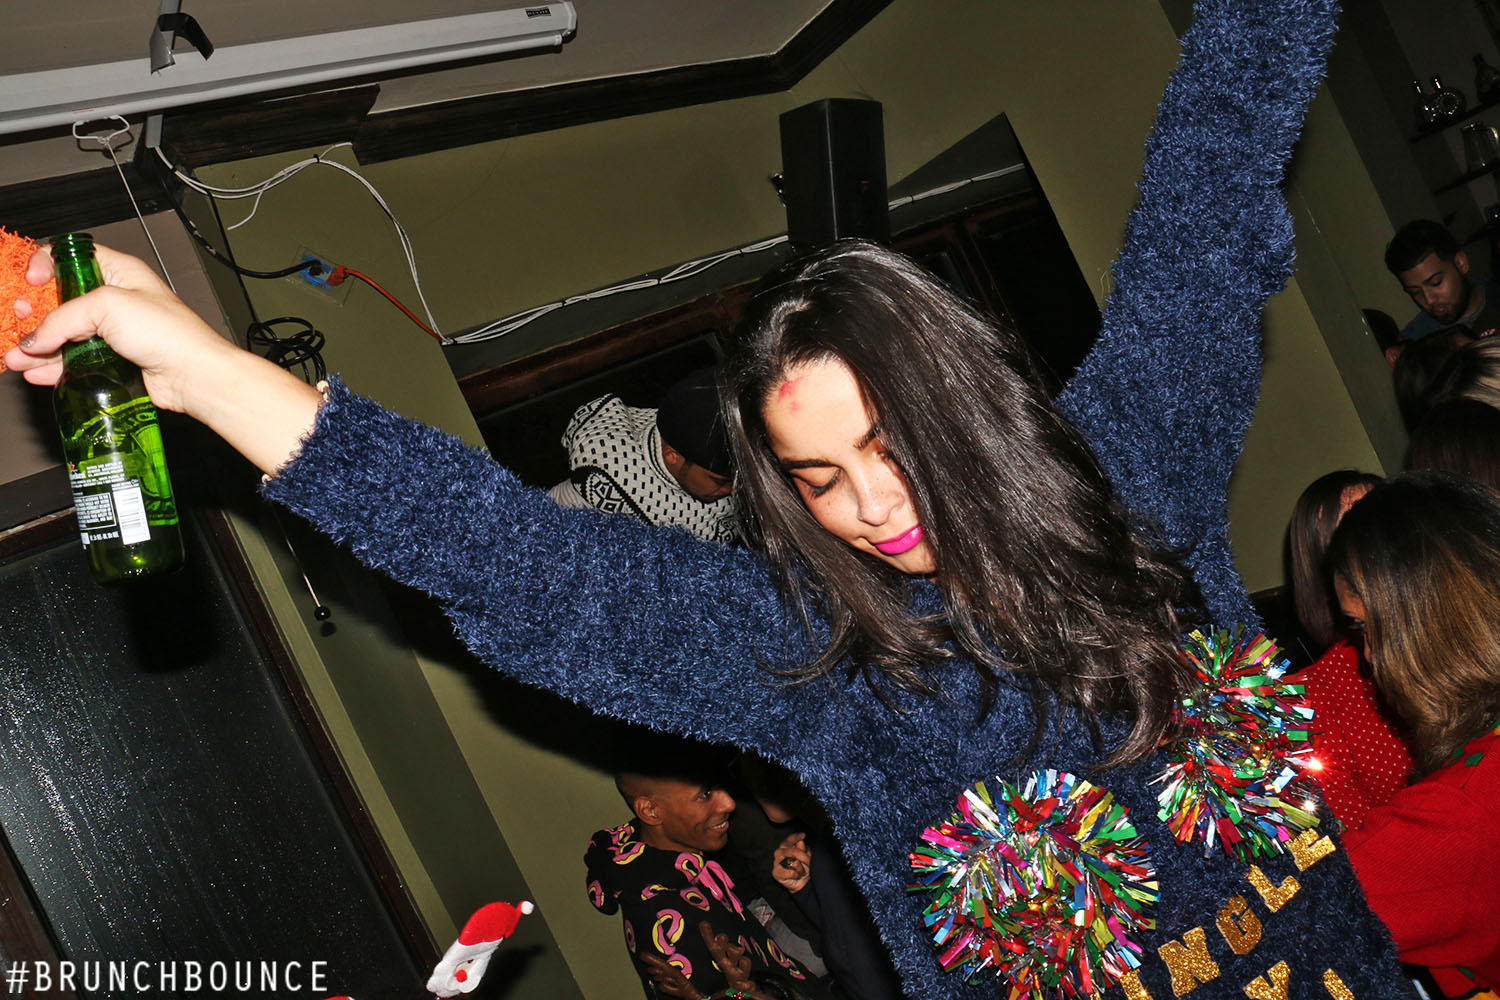 brunchbounce-ugly-christmas-sweater-party-122014_15896626139_o.jpg